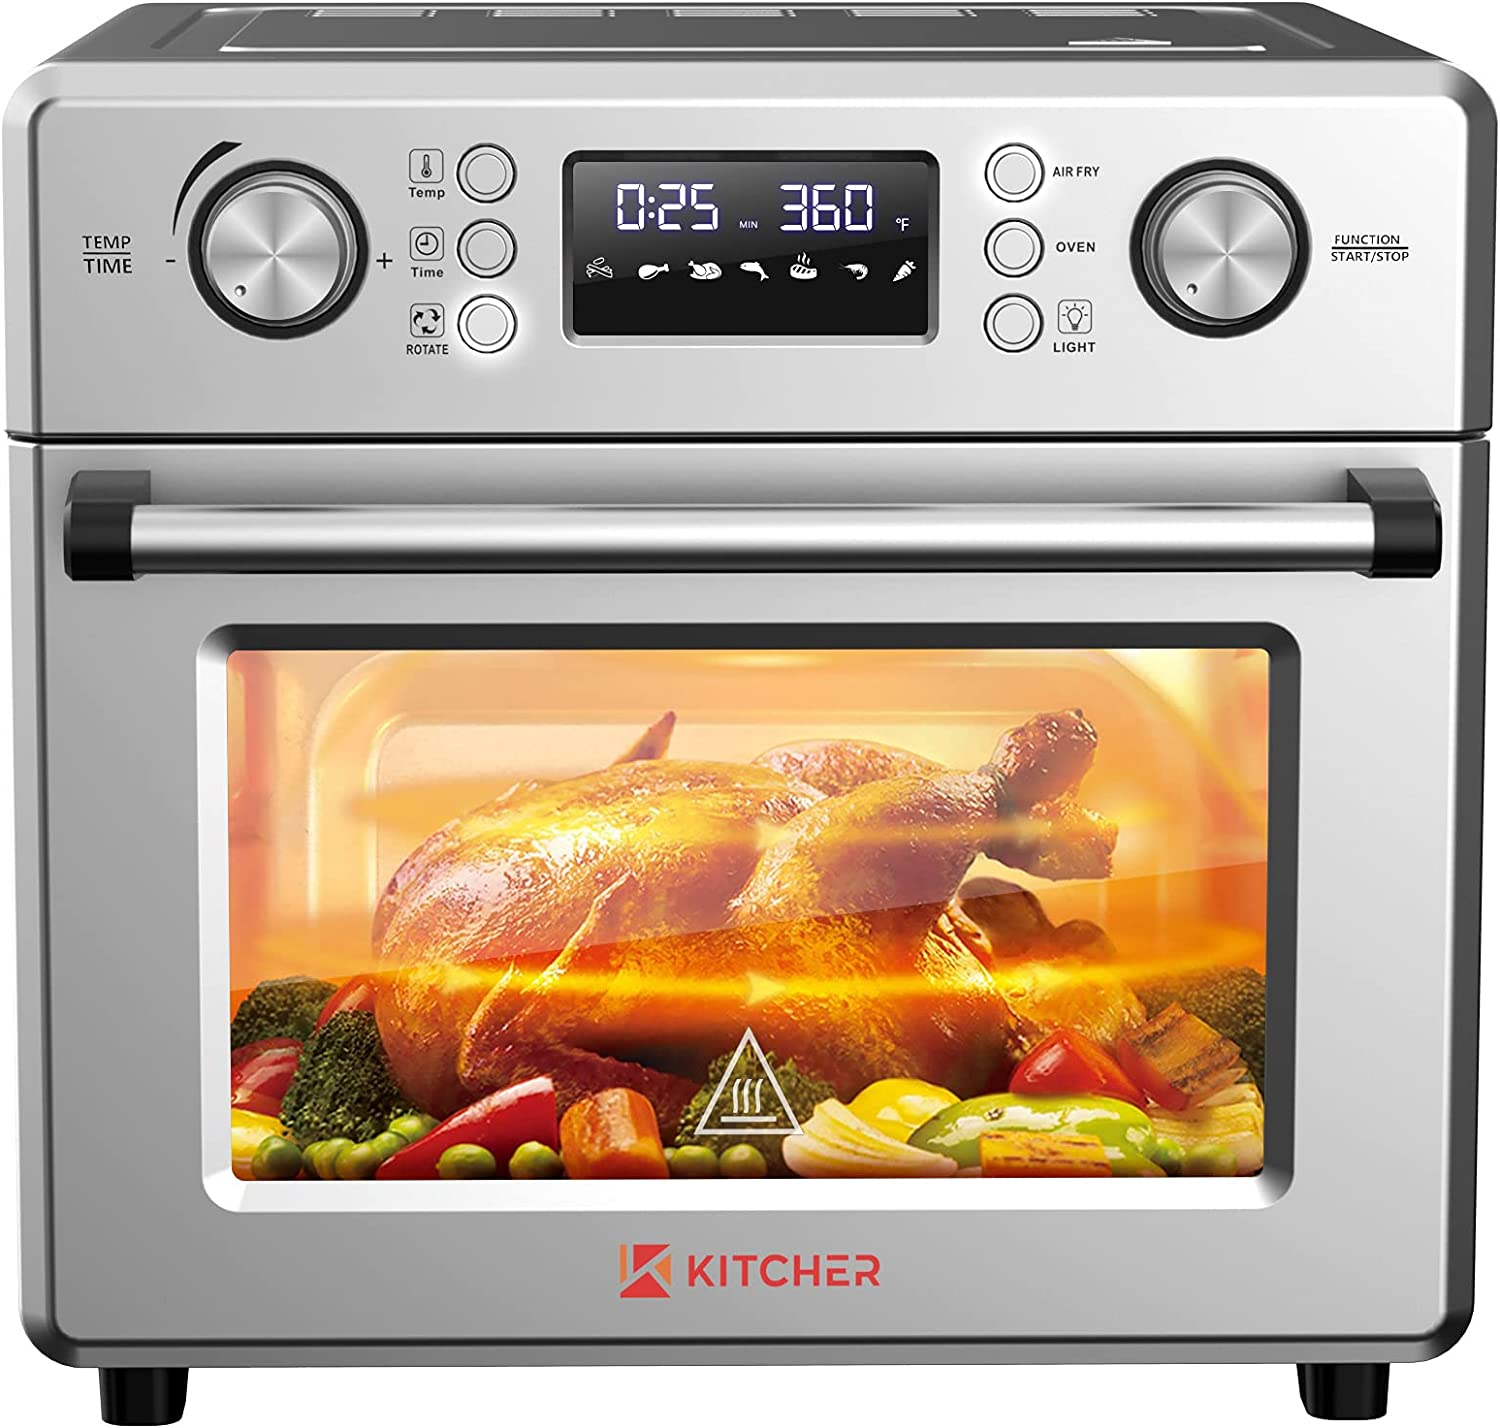 KITCHER 26.5QT Air Fryer Oven, Countertop Toaster Oven 6 Slice Convection Ovens with 77 Recipes 5 Accessories 14 Presets for Bake, Air Fry, Roast,Toast, Pizza, Dehydrate, Stainless Steel Silver